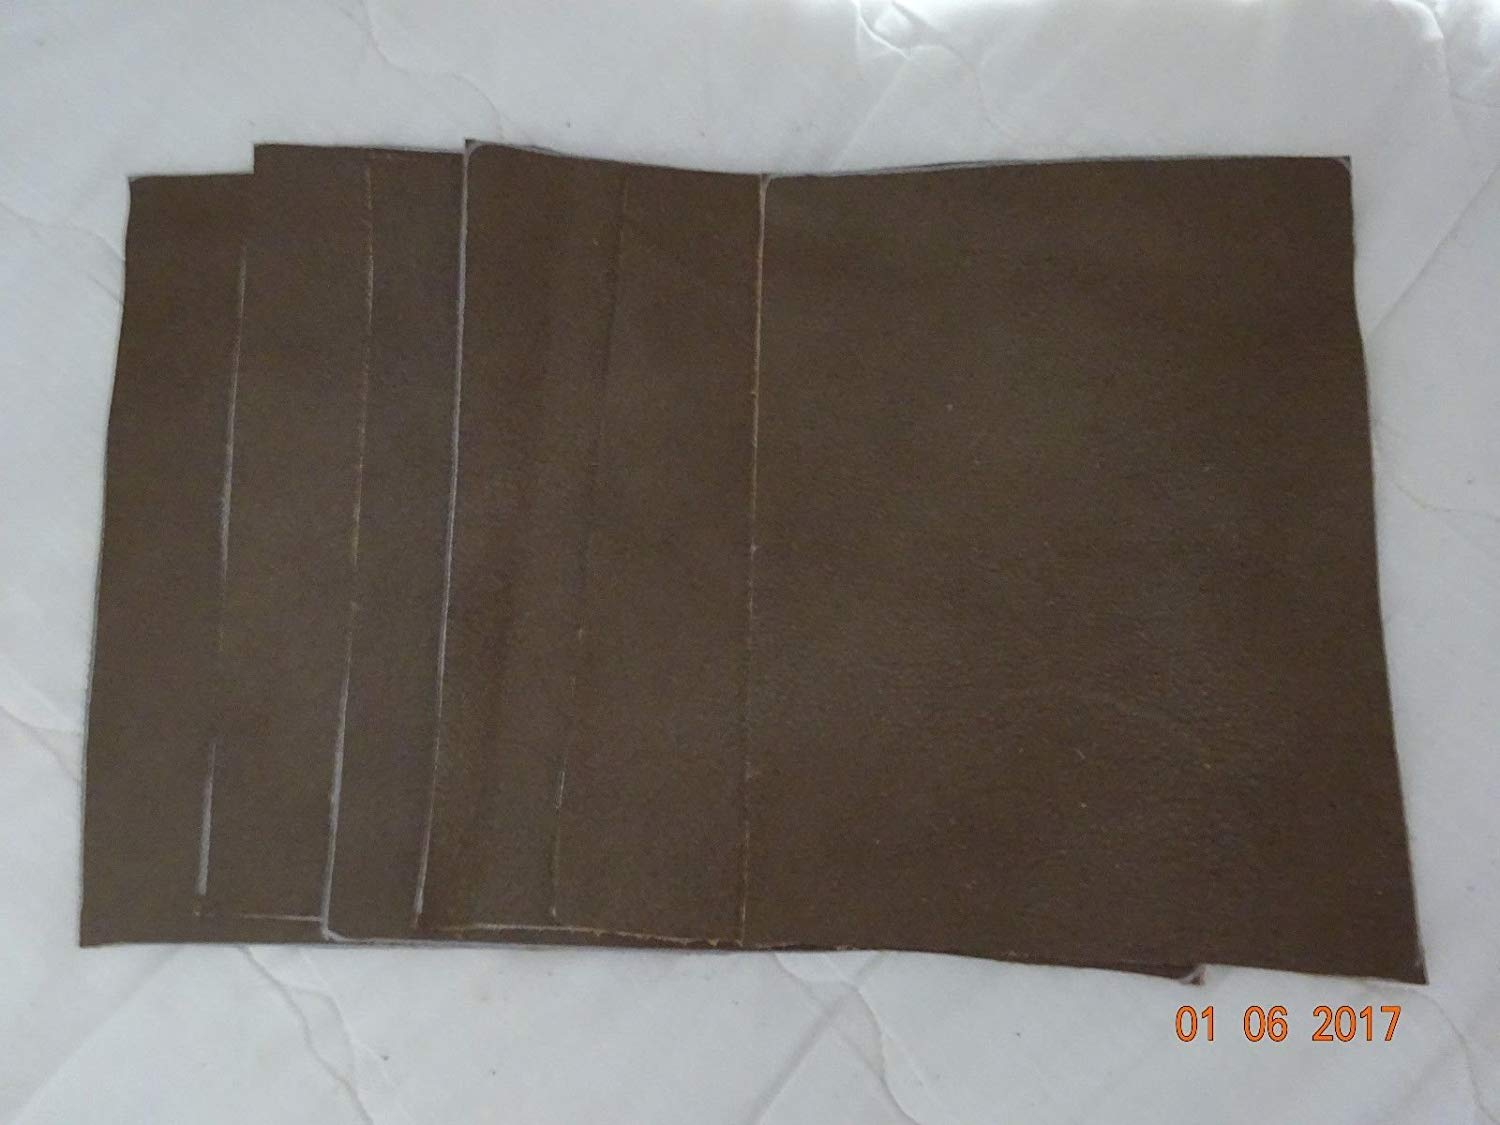 Scrap leather Genuine Cowhide Khaki or Light Brown 6 pieces 8x6 New